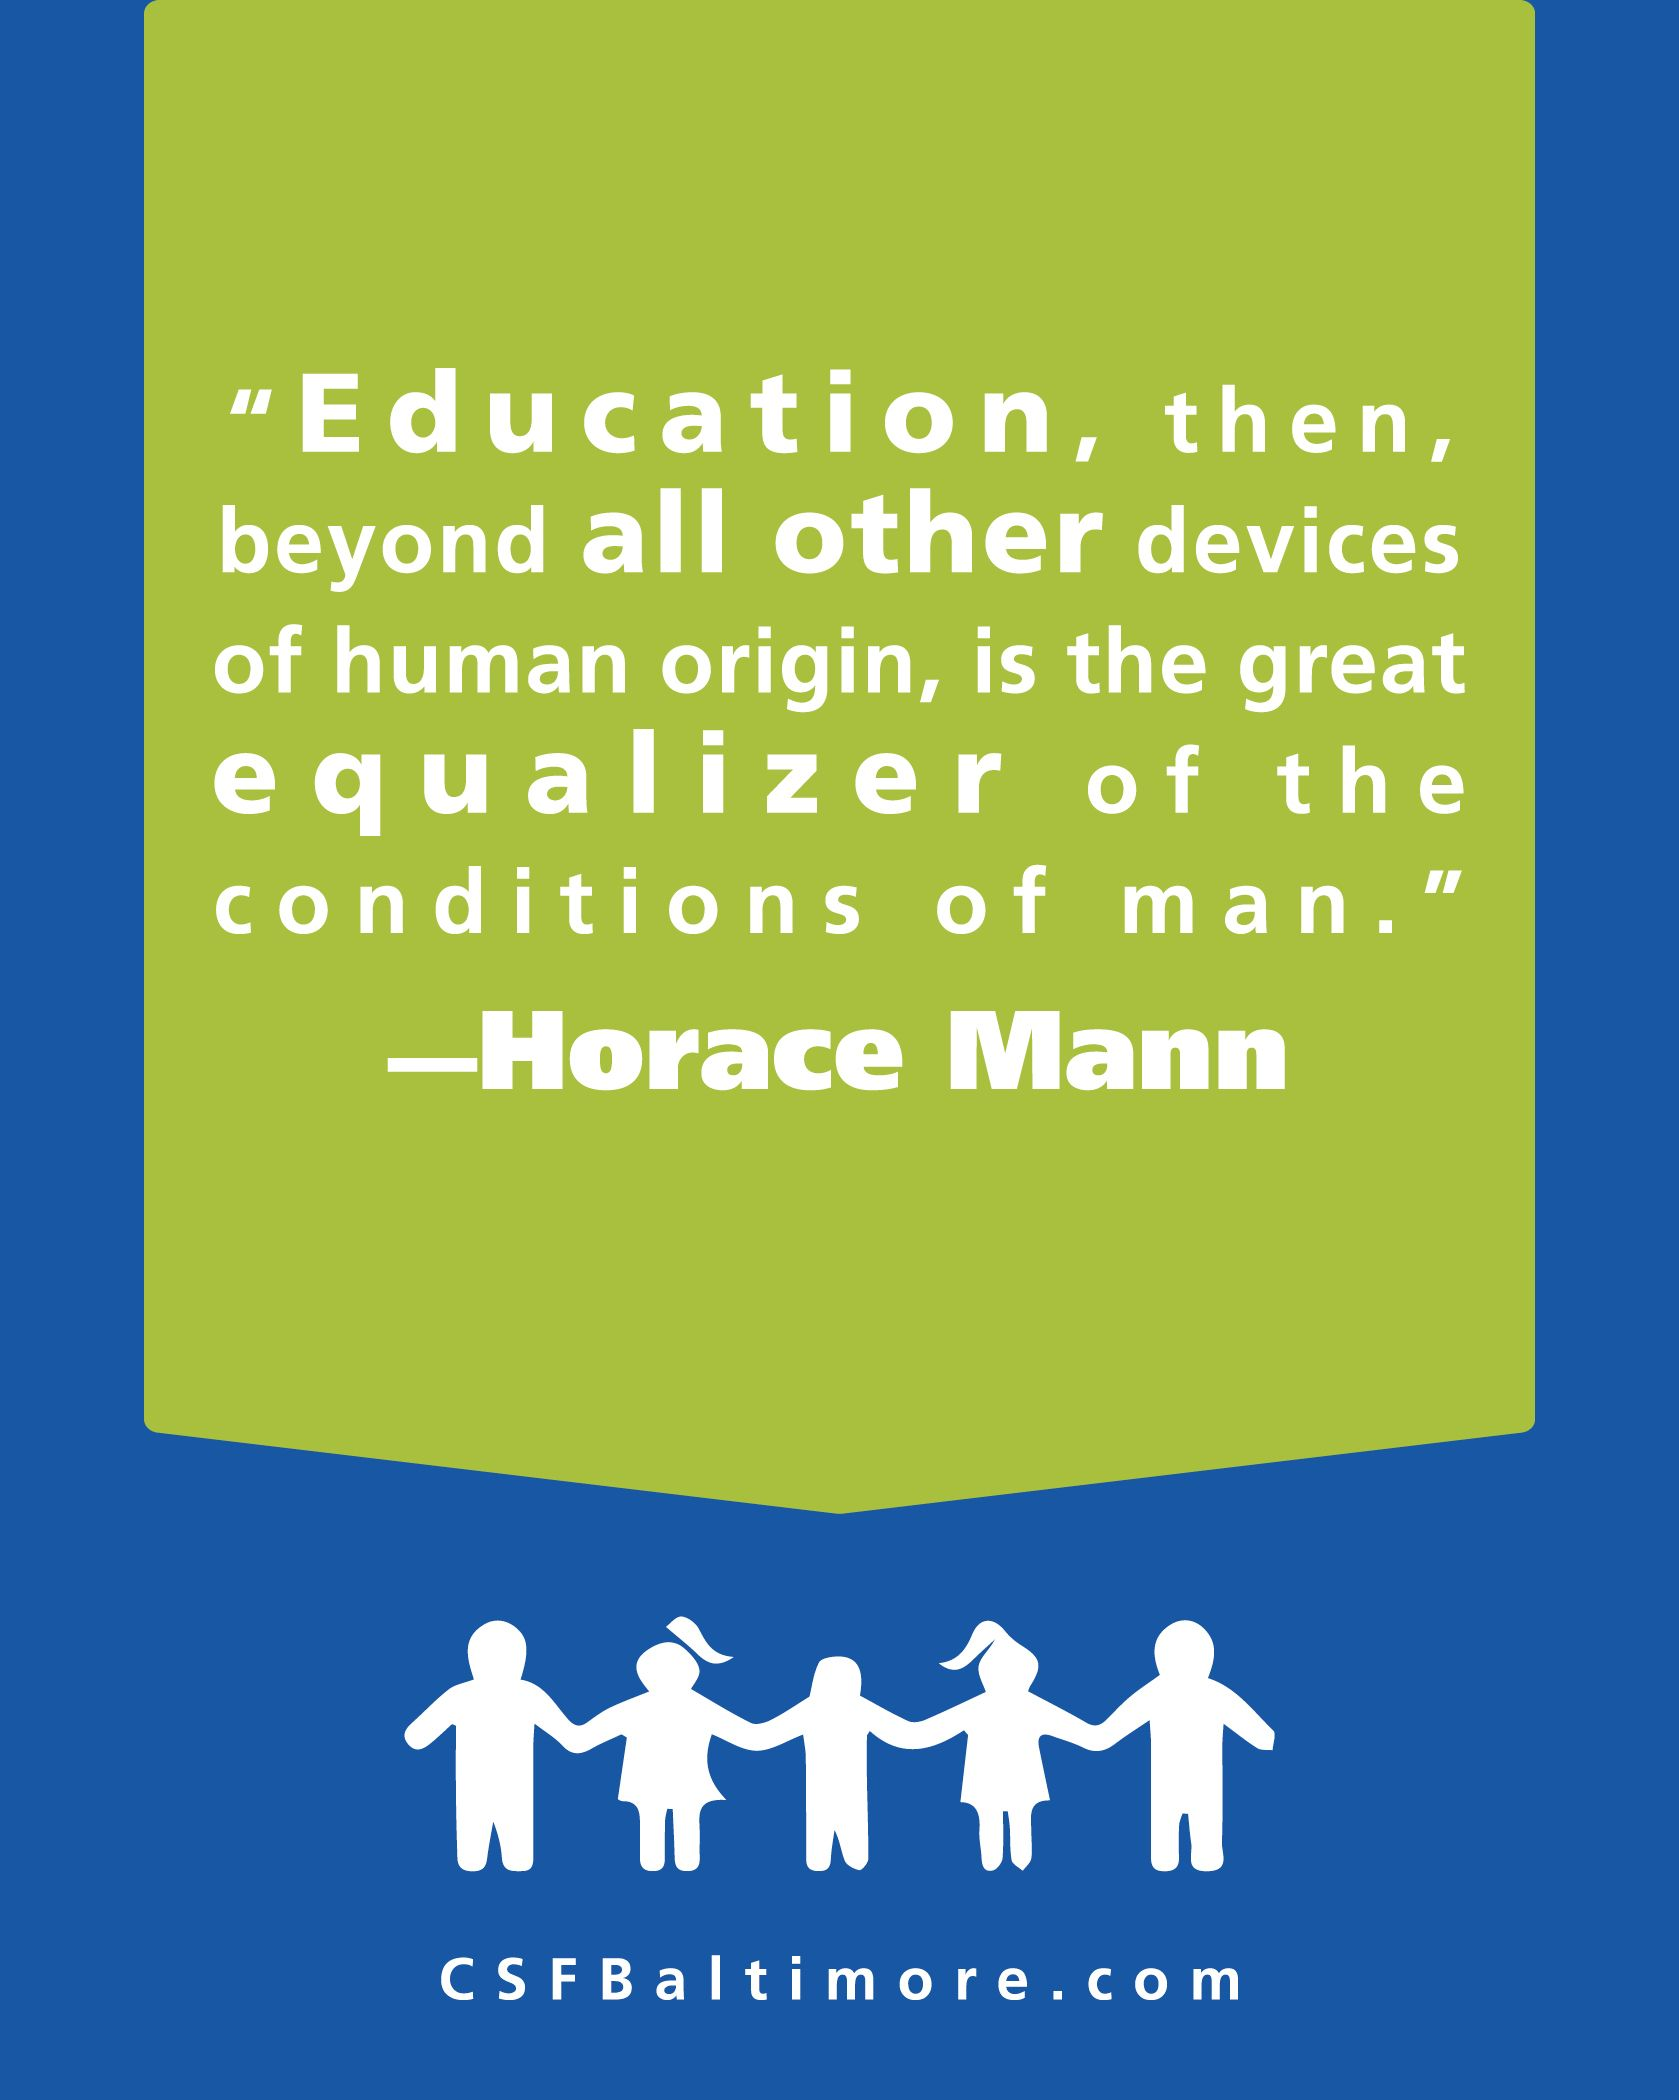 Education Is The Great Equalizer And Shouldnt Be Limited To The